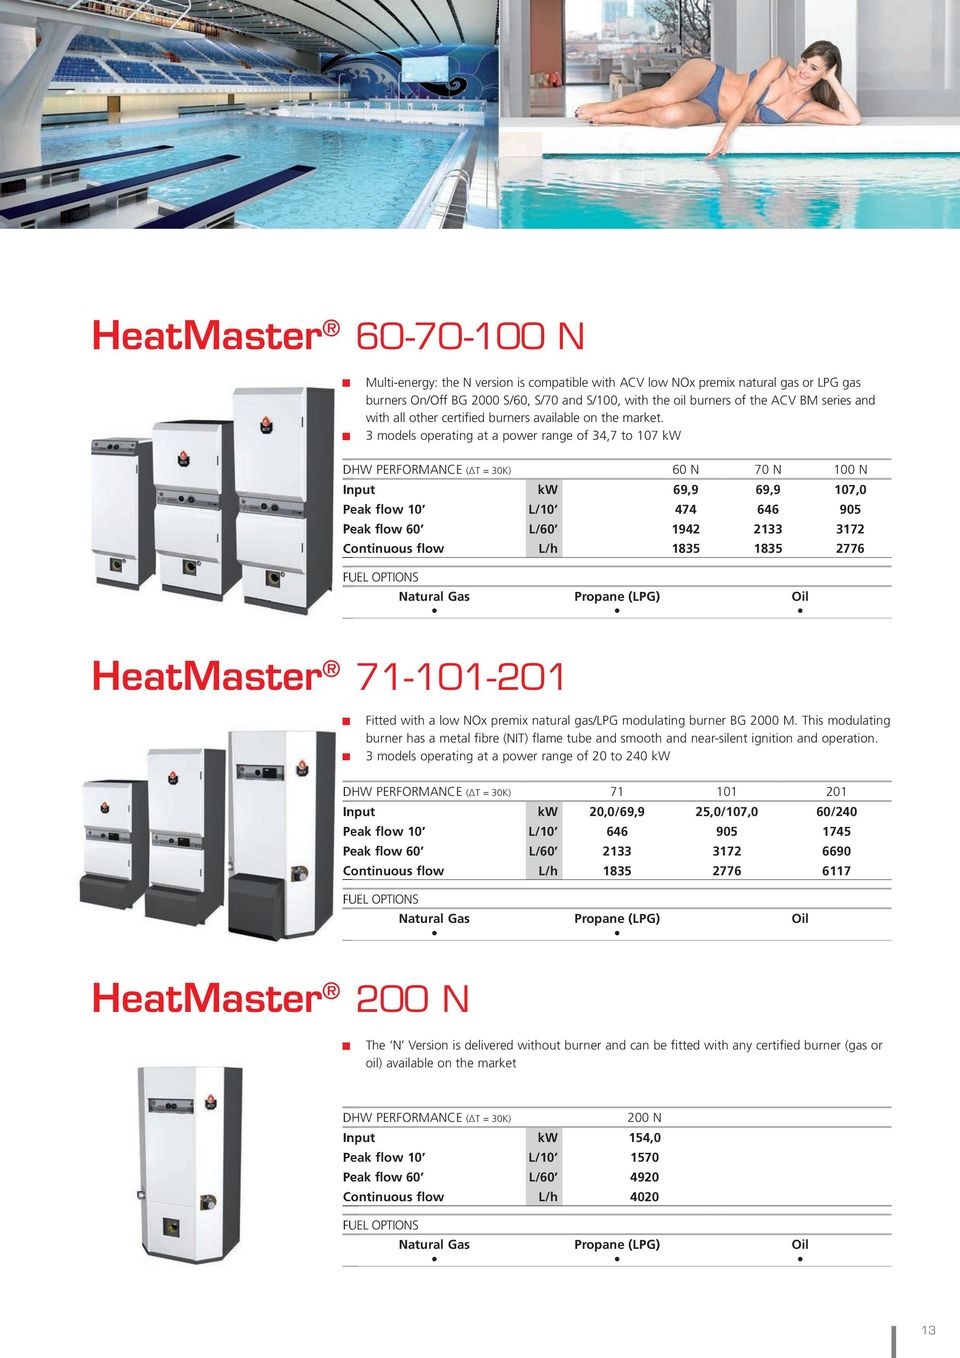 3 models operating at a power range of 34,7 to 107 kw DHW PERFORMANCE ( T = 30K) 60 N 70 N 100 N Input kw 69,9 69,9 107,0 Peak flow 10 L/10 474 646 905 Peak flow 60 L/60 1942 2133 3172 Continuous